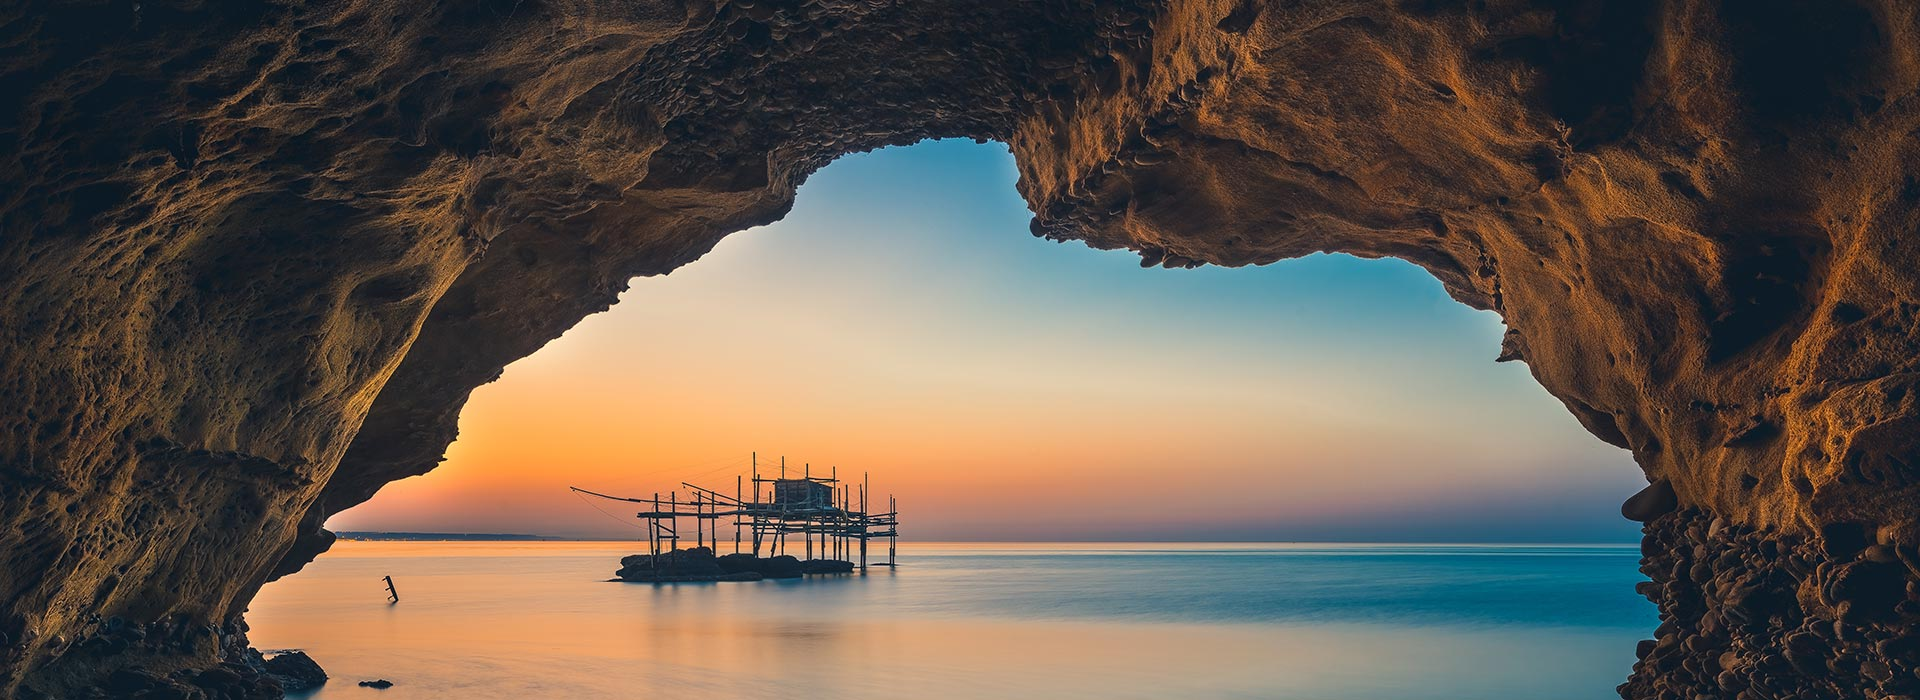 The Trabocchi on the Abruzzese sea